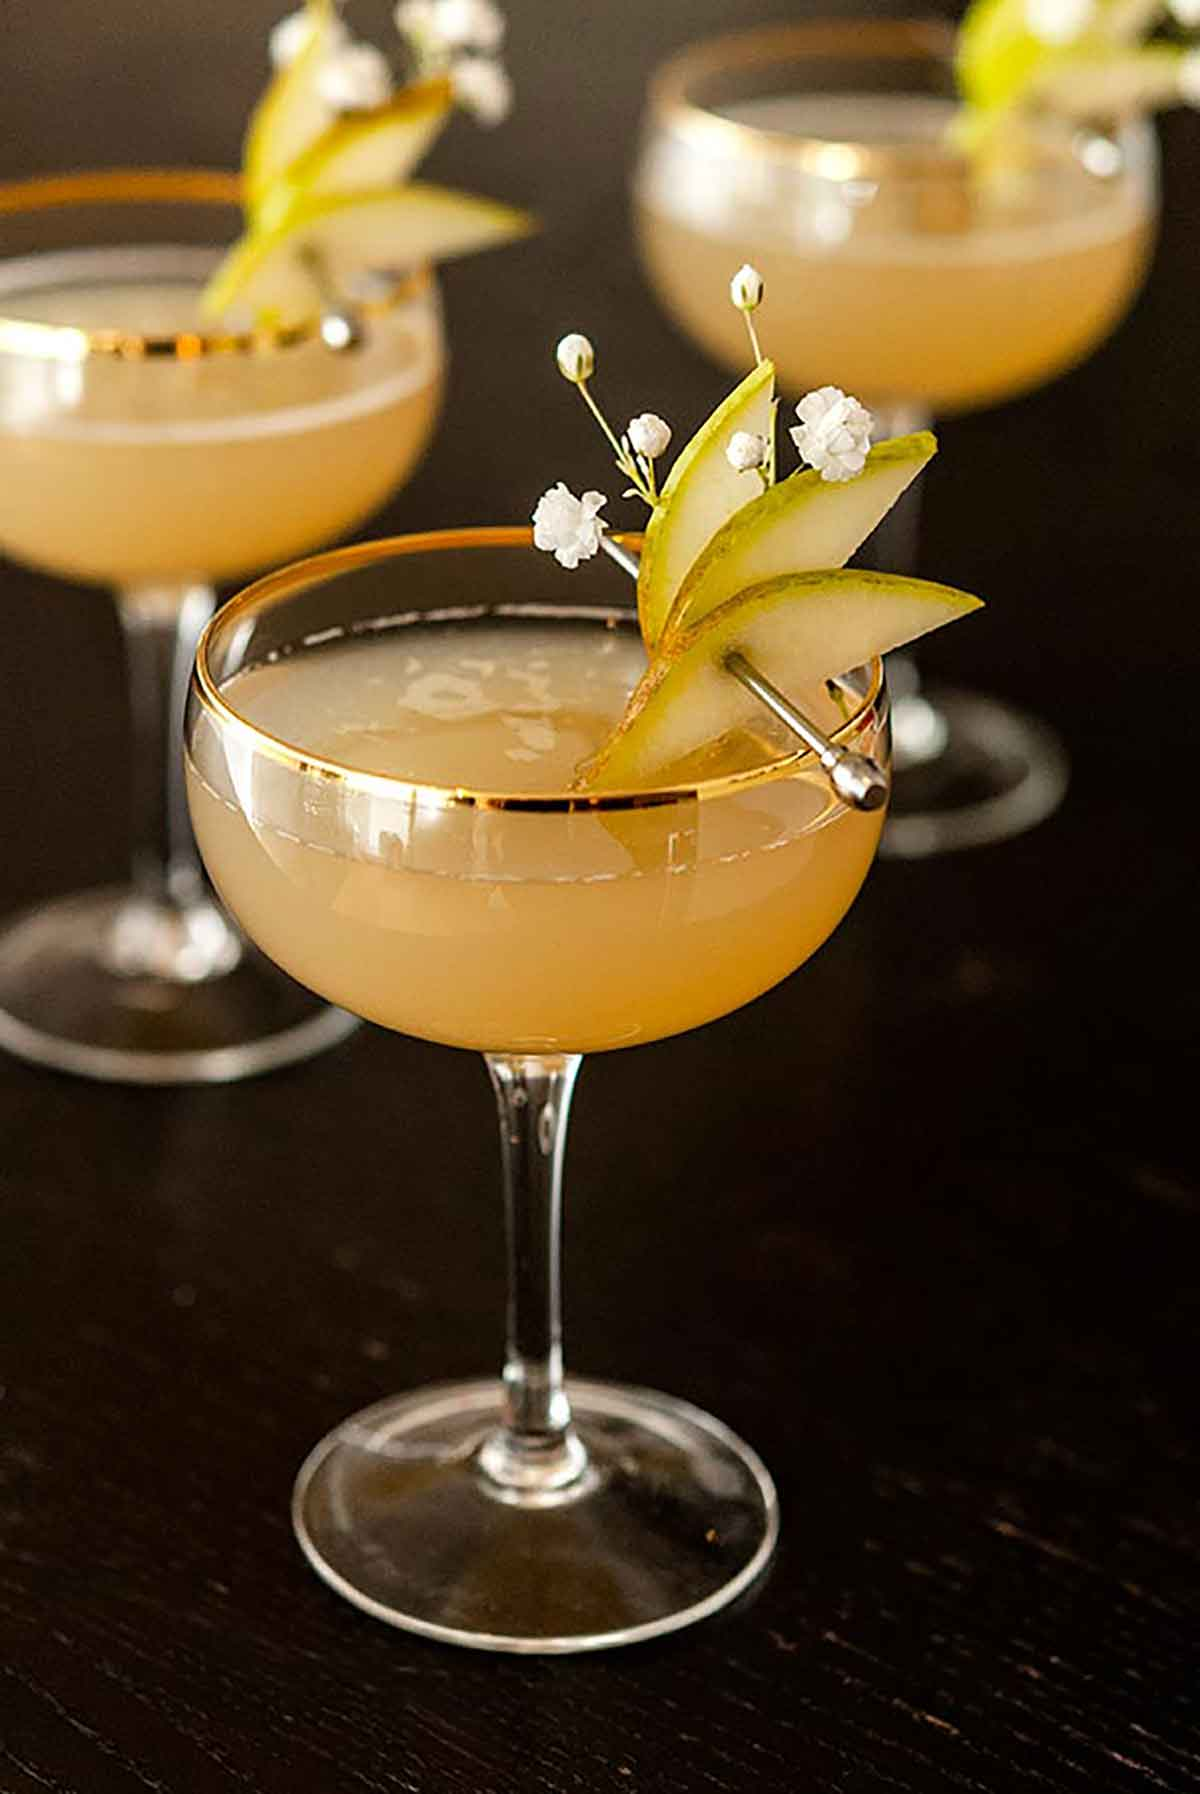 3 pear and ginger cocktails, garnished with sliced pears on a cocktail pin and a few baby's breath flowers.